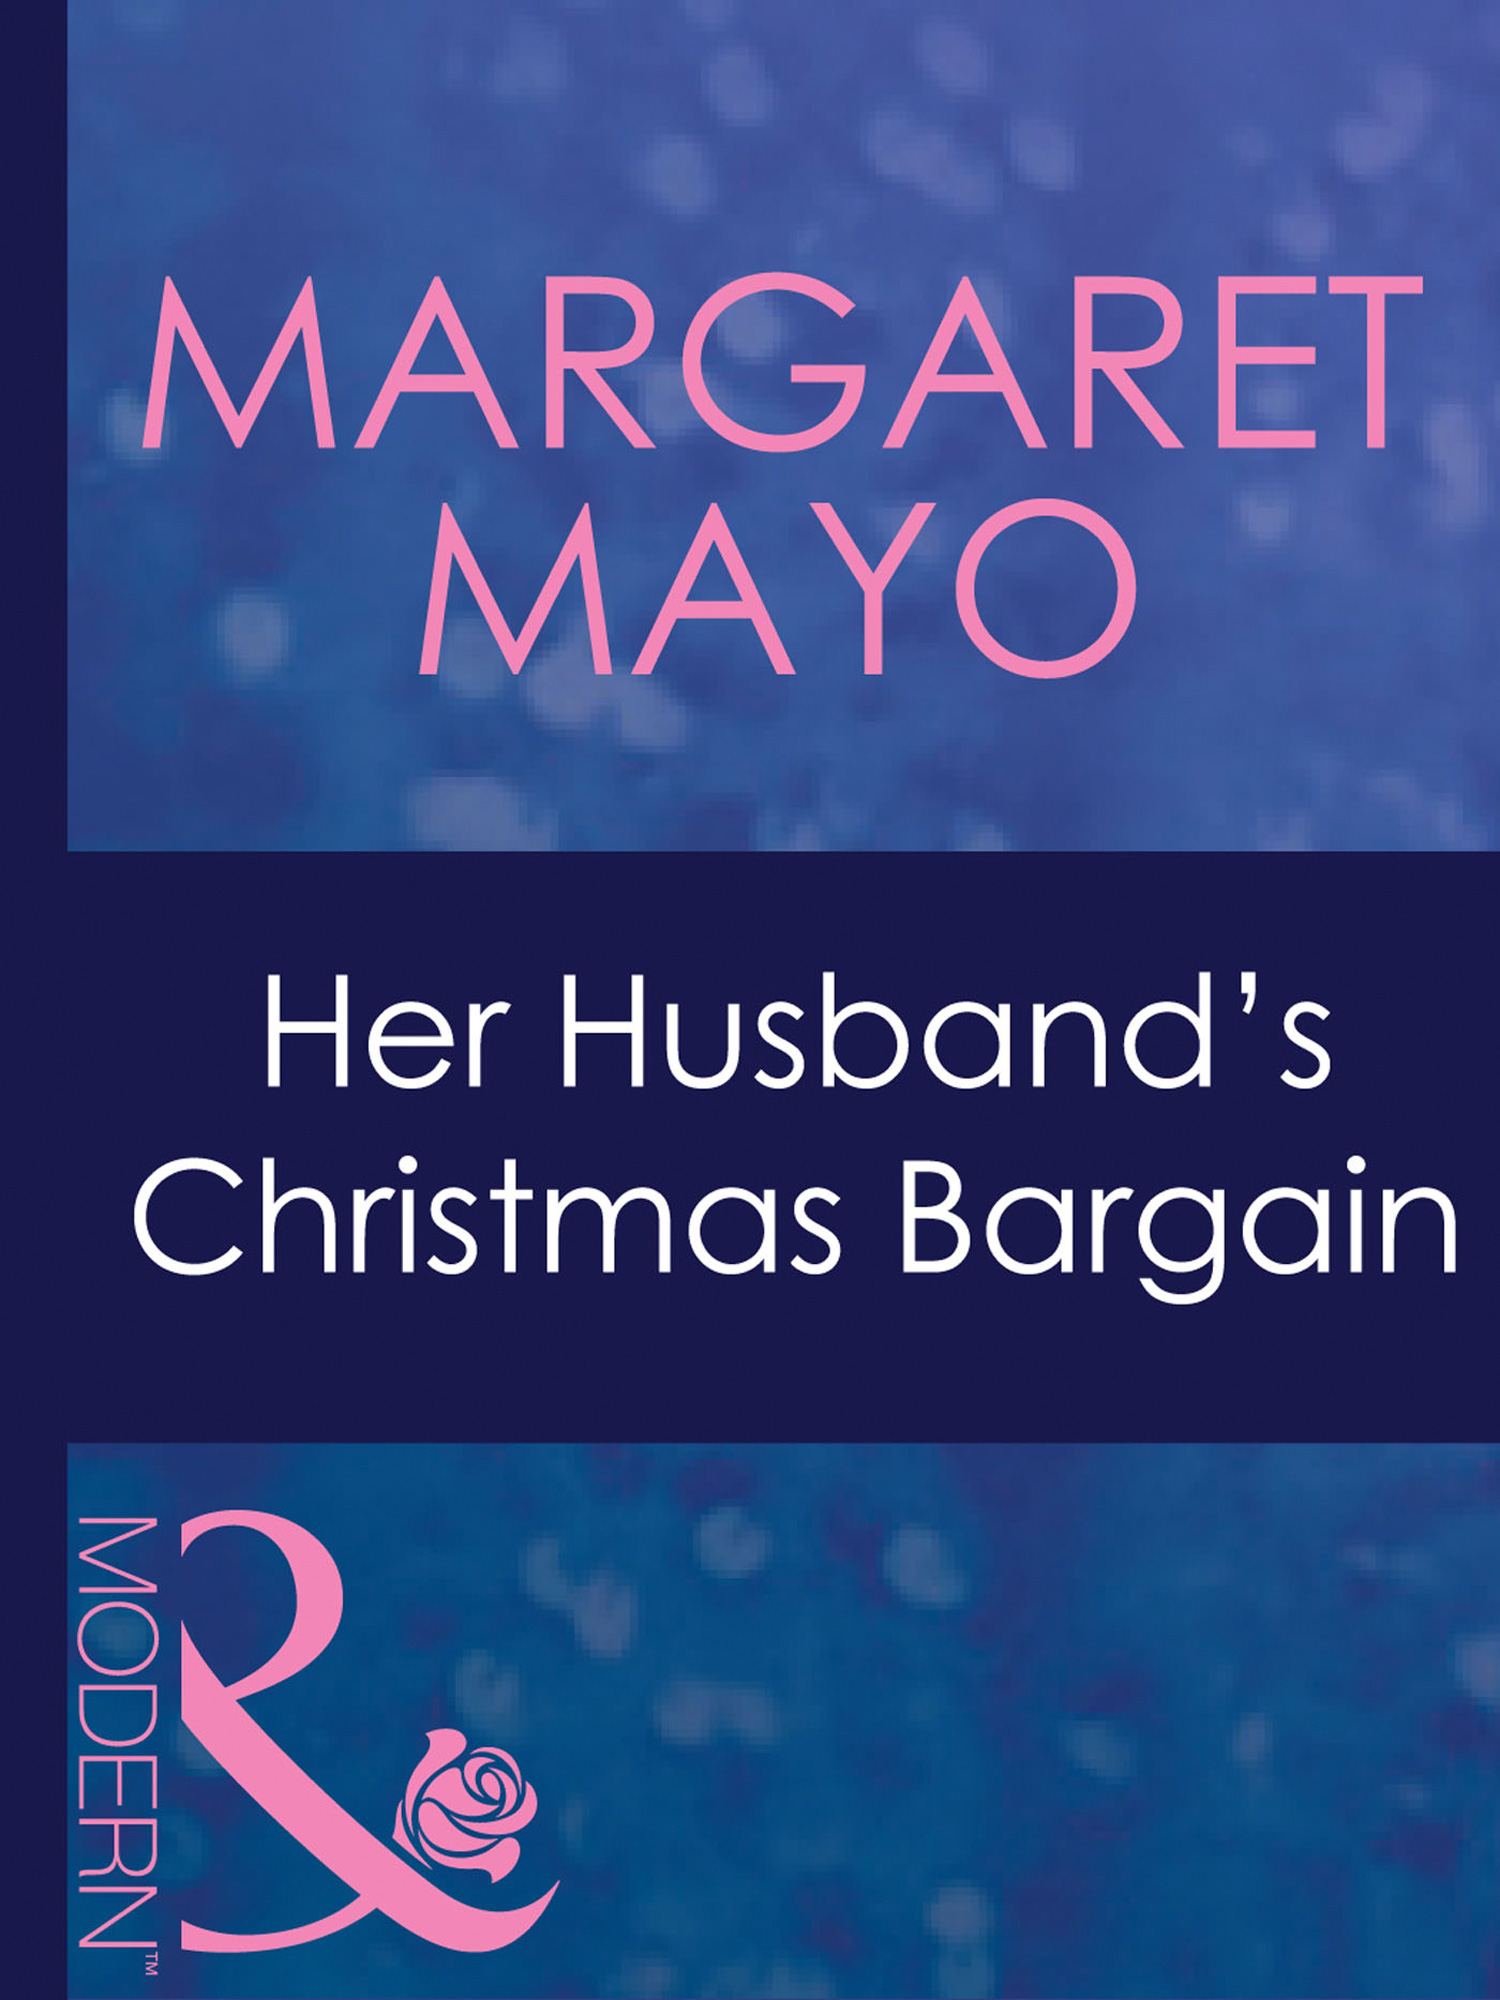 Her Husband's Christmas Bargain